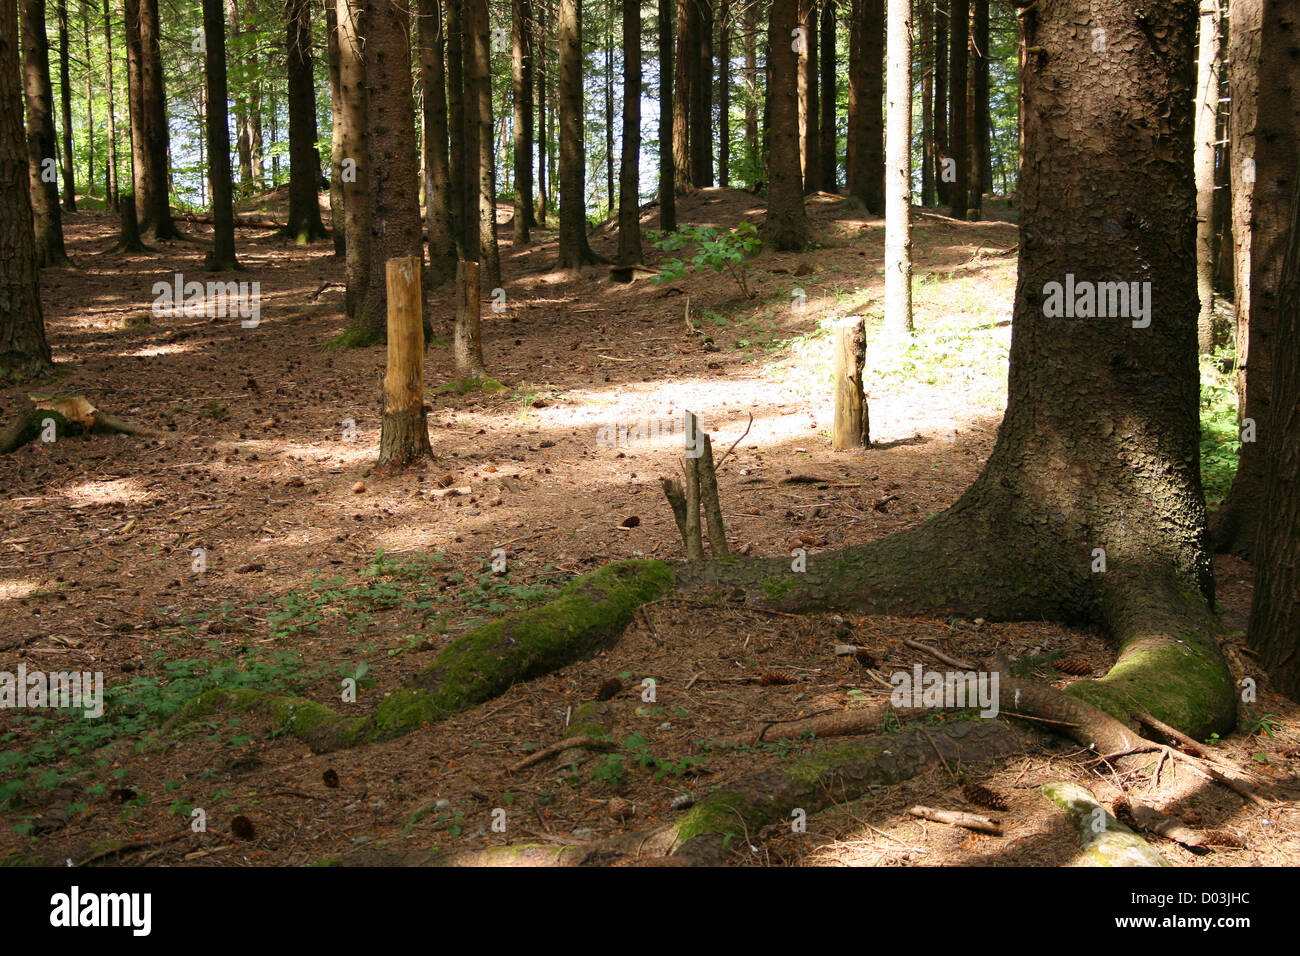 Sunlight and shaddow in the deep forrest. - Stock Image